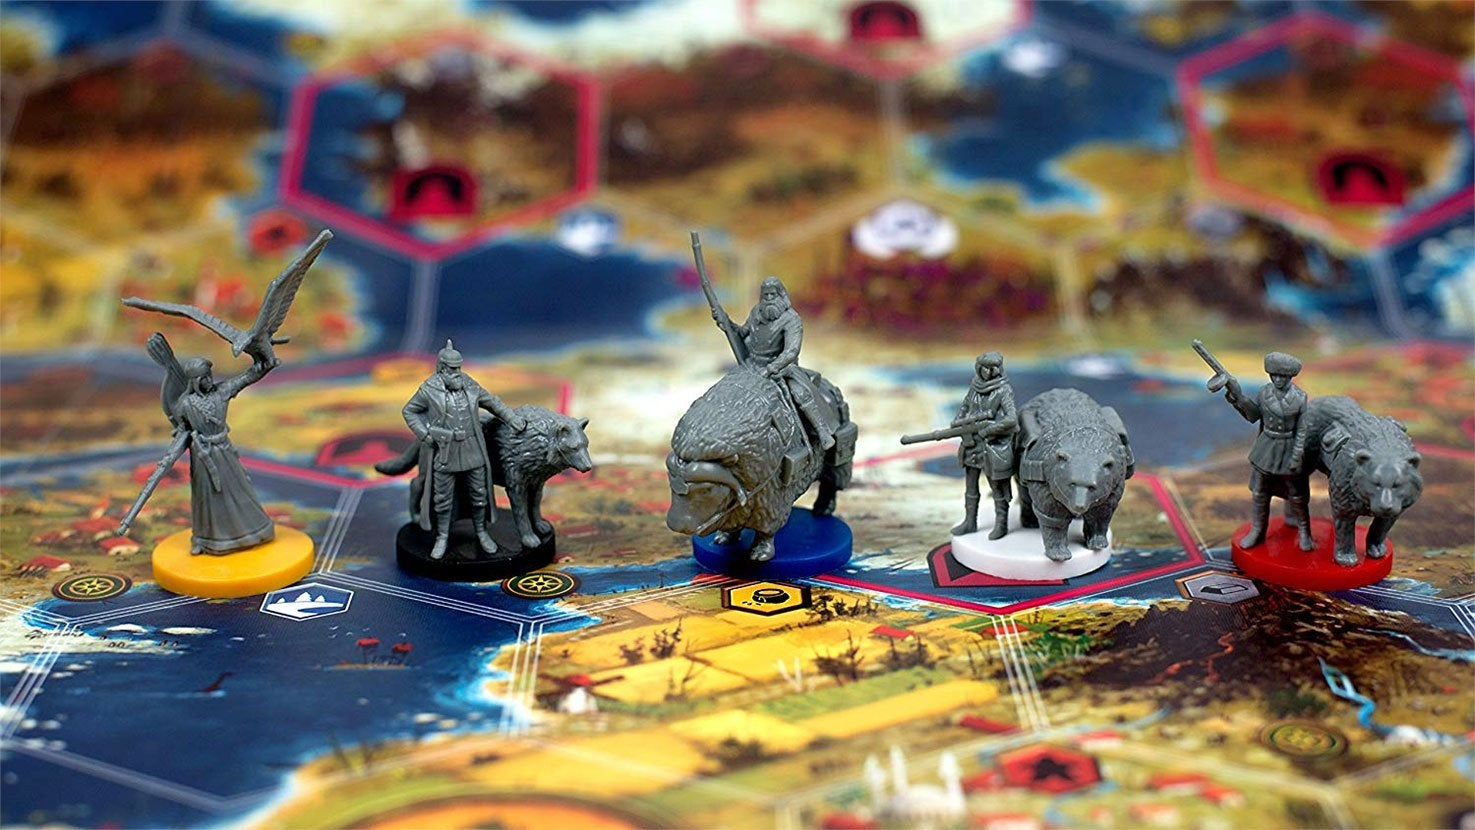 The Best Solo Board Games